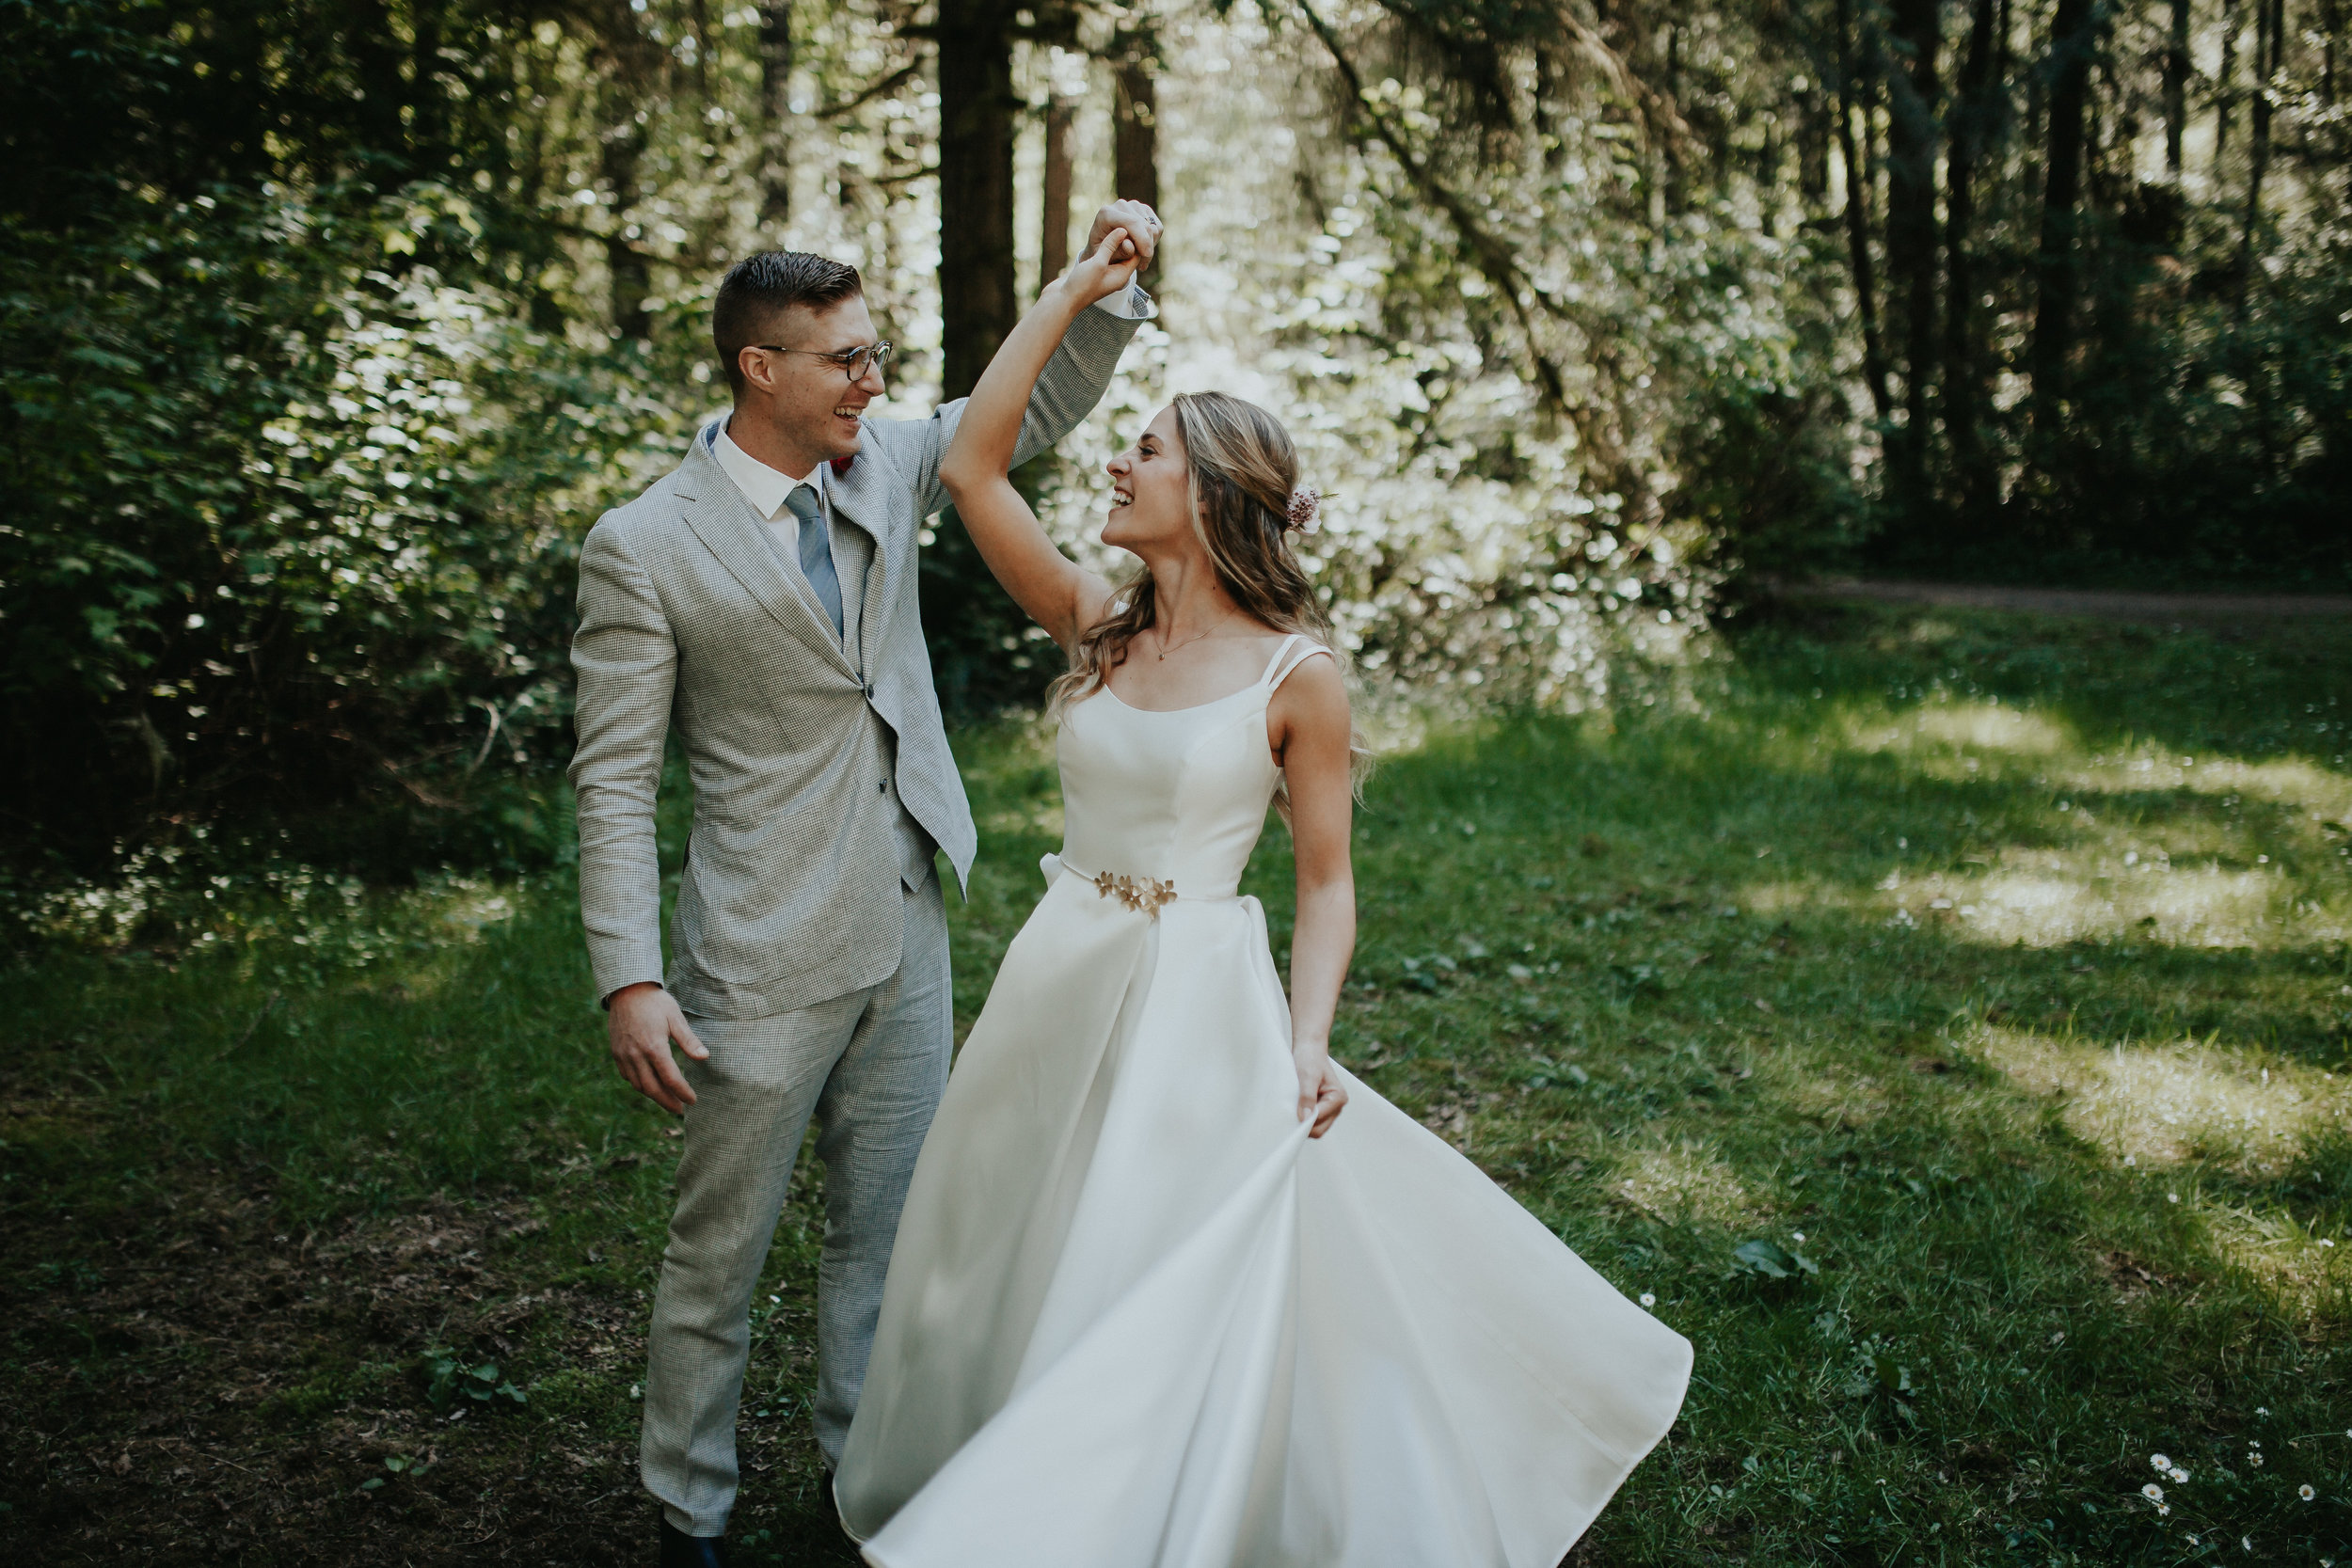 gig harbor wedding photographer | seattle washington wedding photographer | olympia washington | wedding inspiration 2019